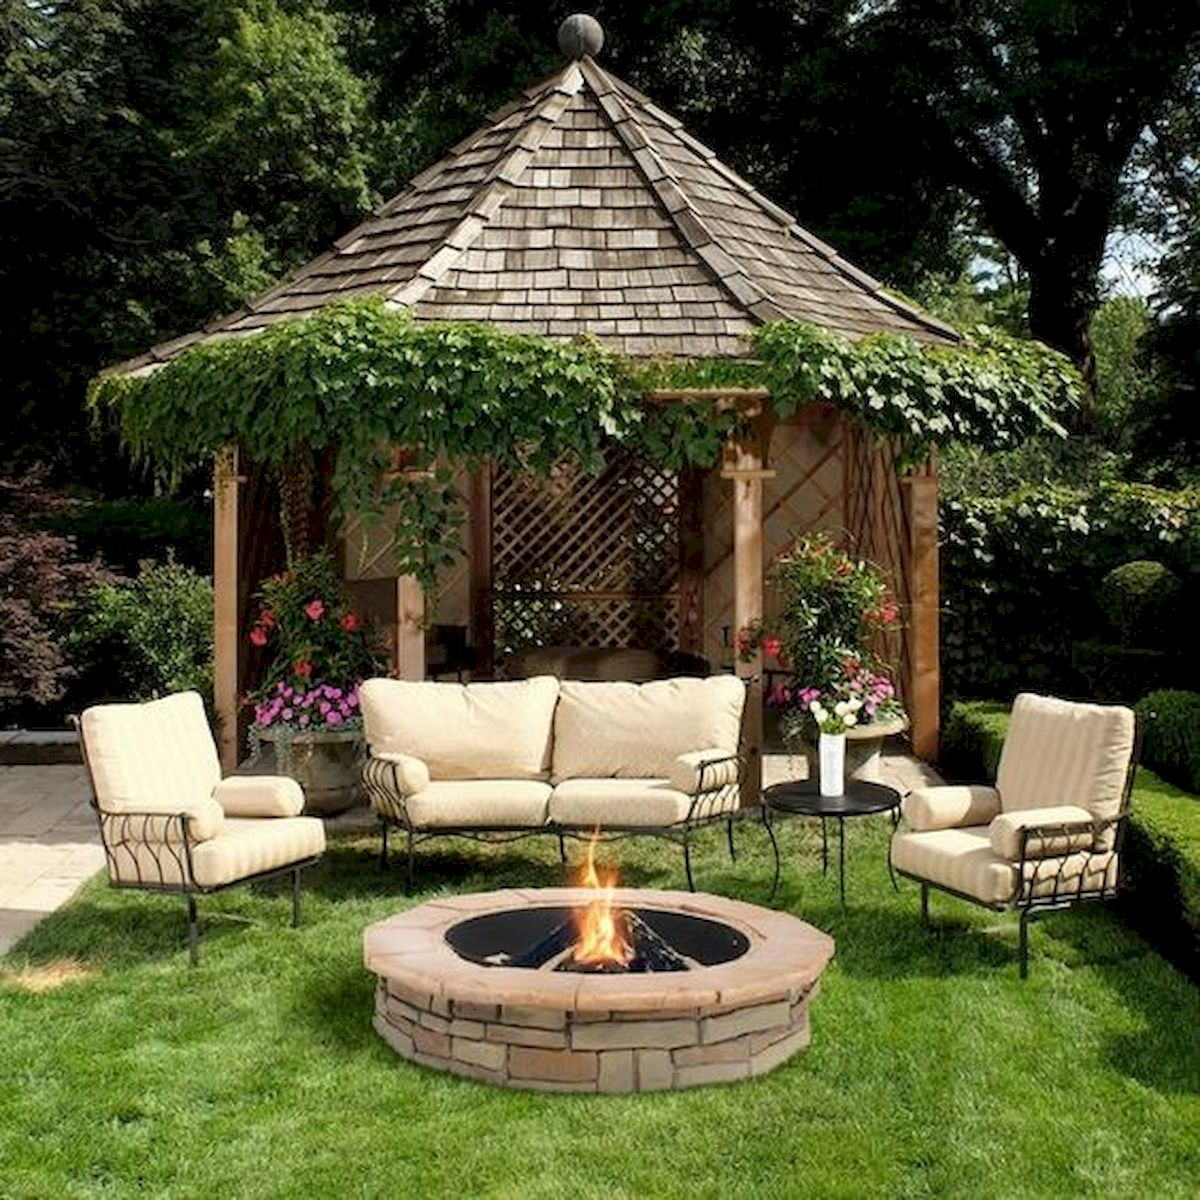 57 Awesome Backyard Fire Pit Ideas (13)